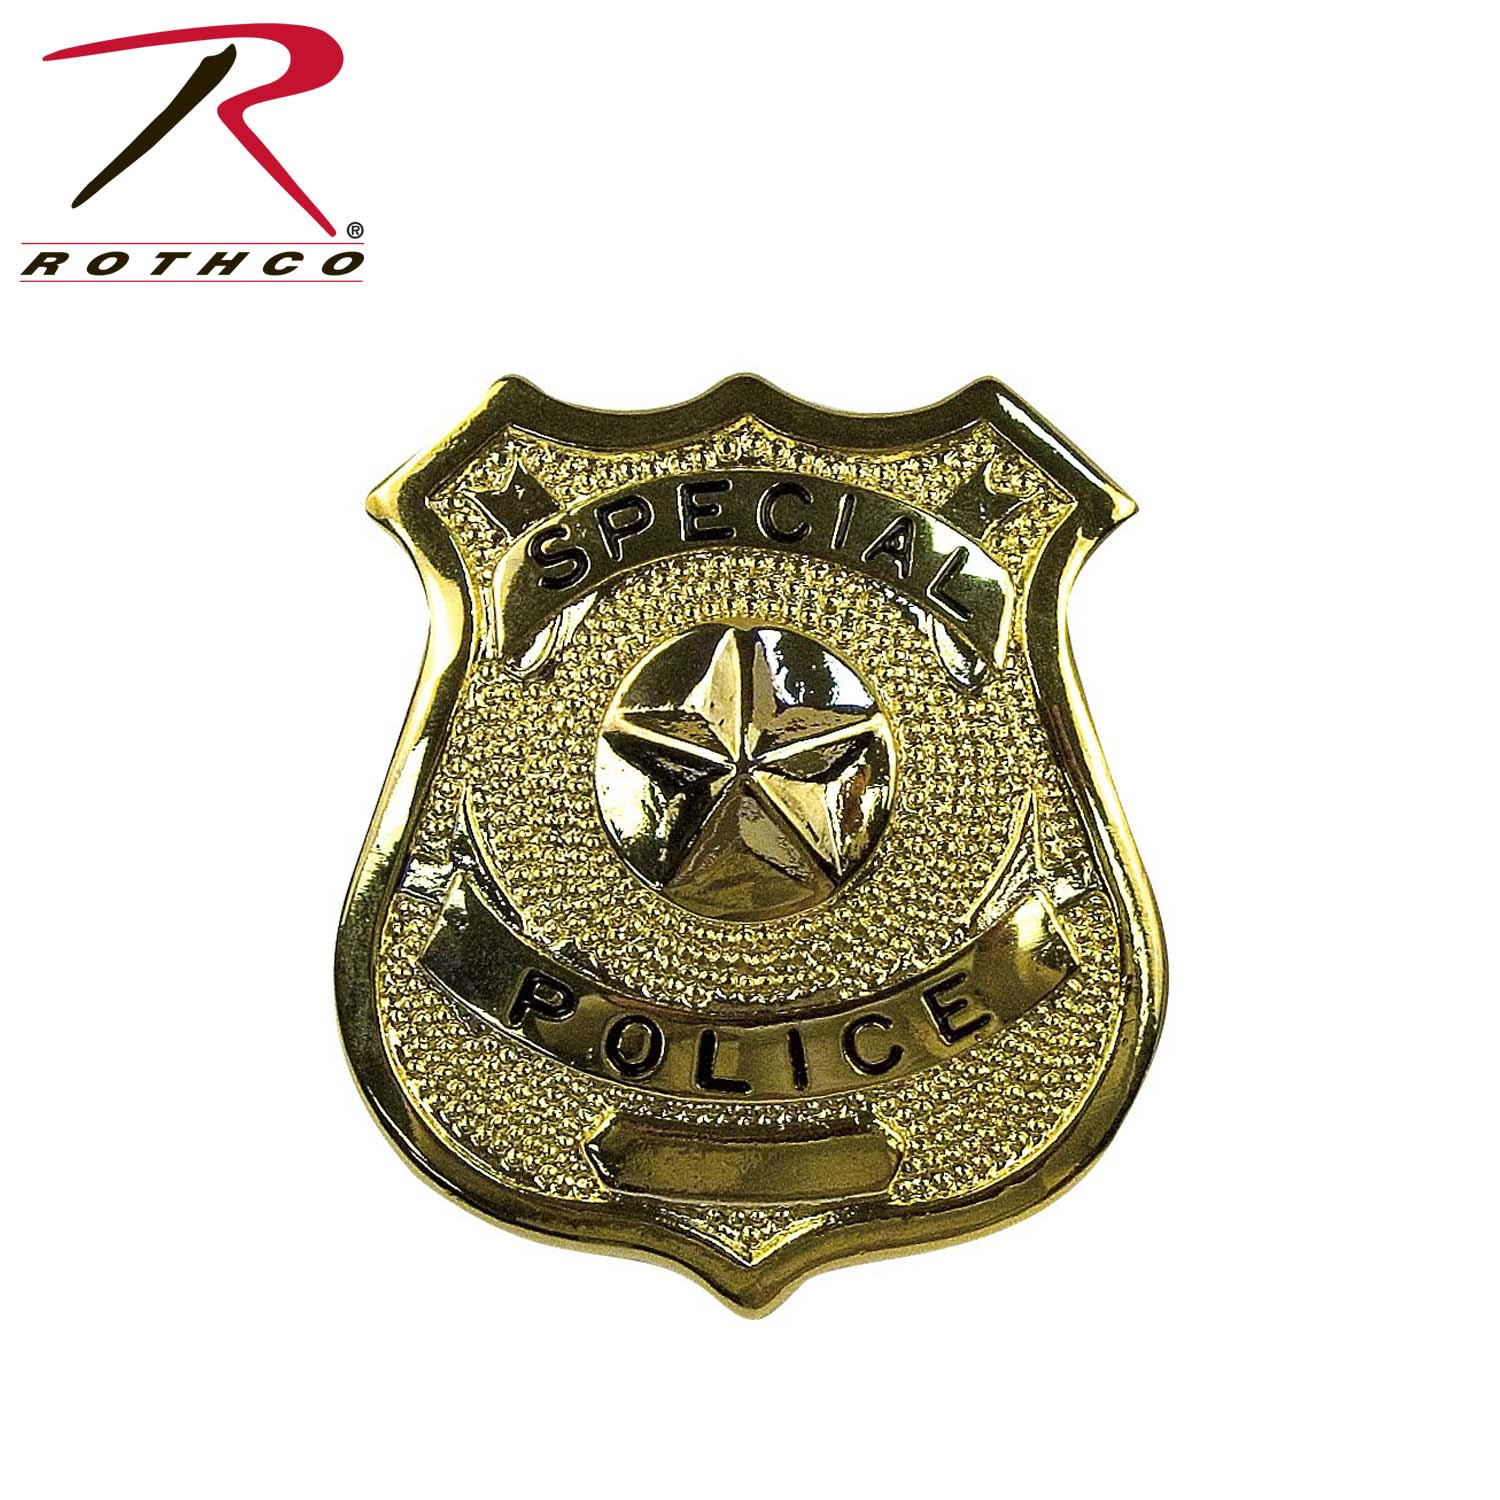 rothco badge special police